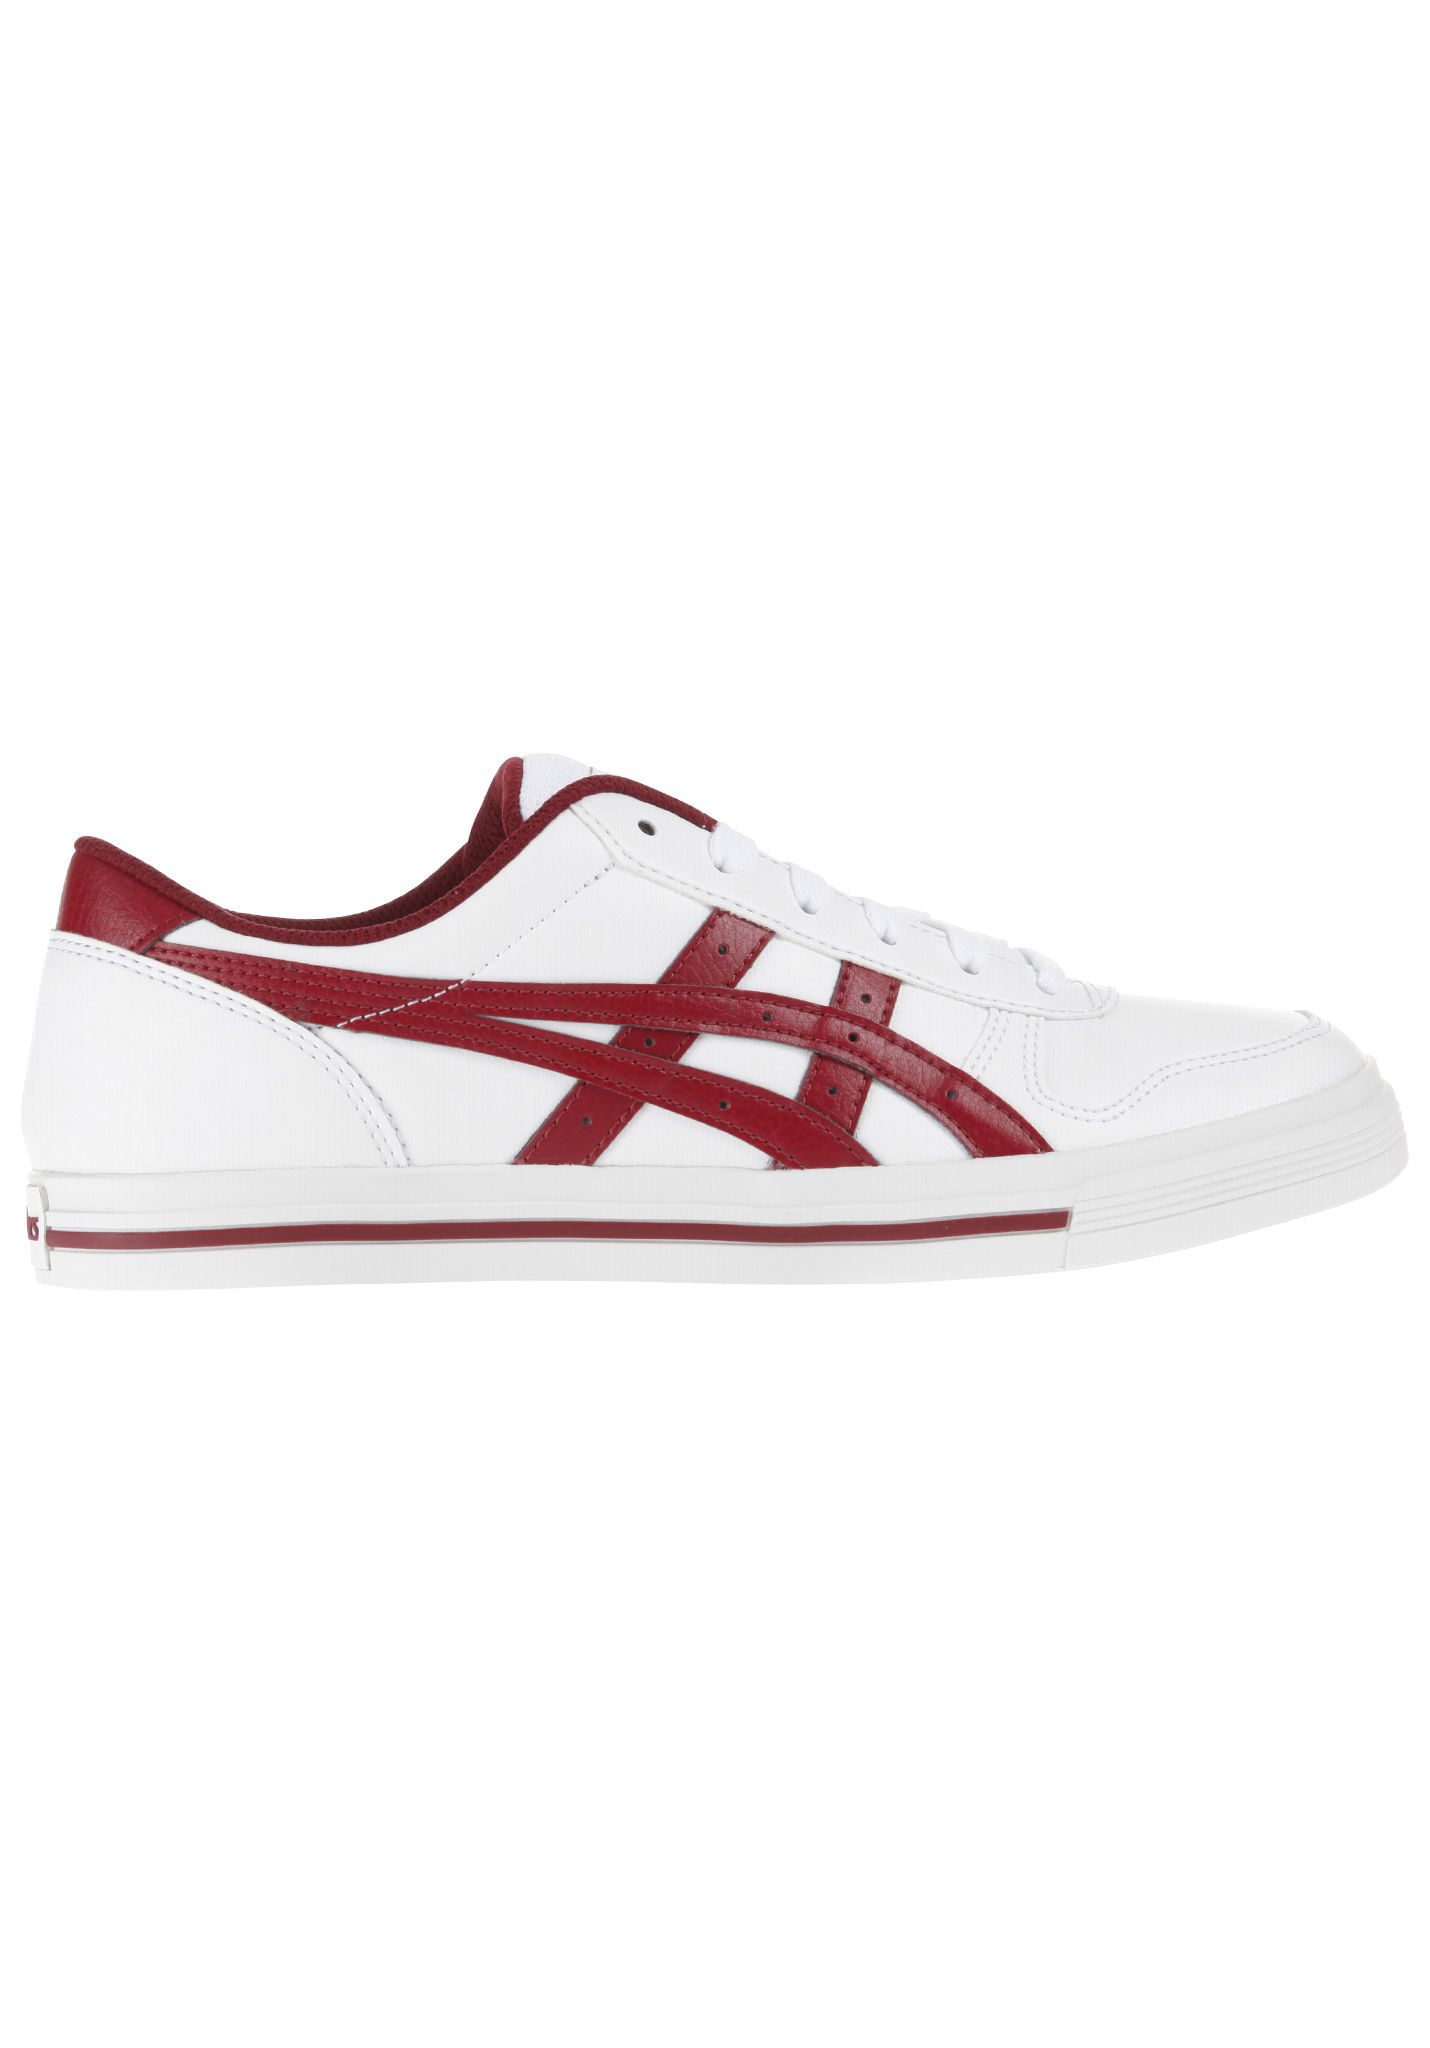 For Aaron Tiger Sneakers Men Asics Red XPOkZiuTwl